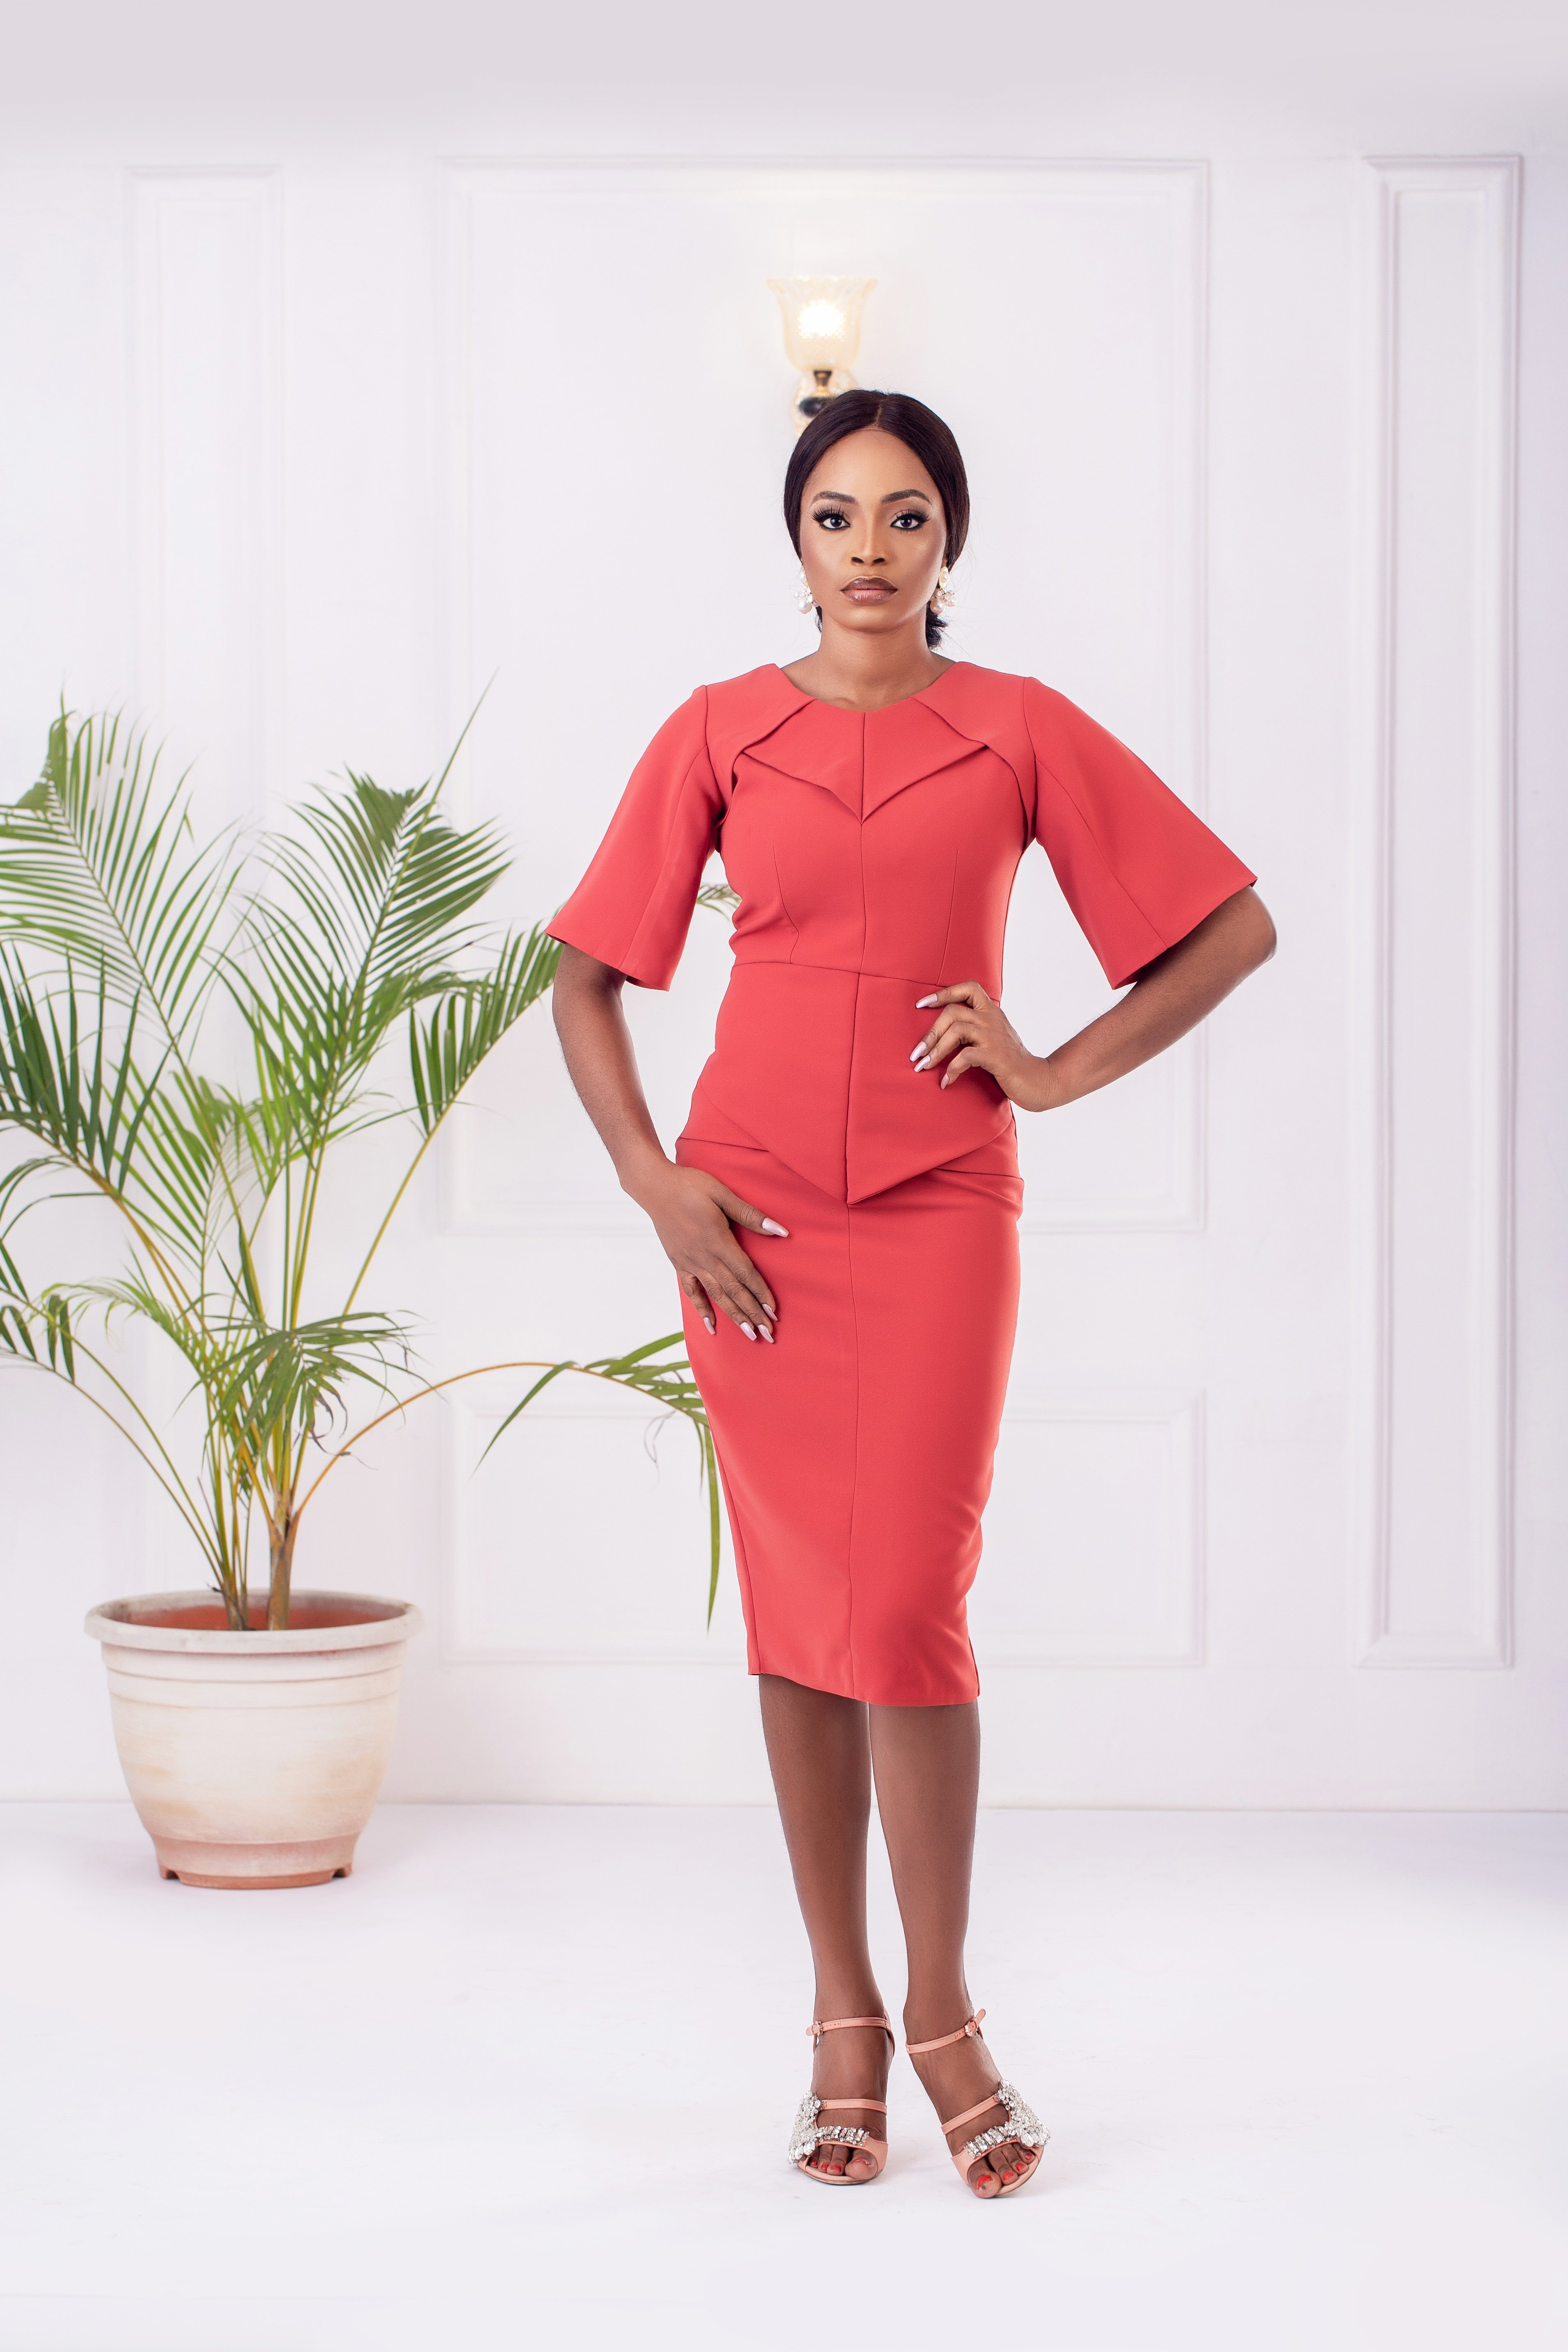 The Phoenix Architectural Dress in Punch Pink 2